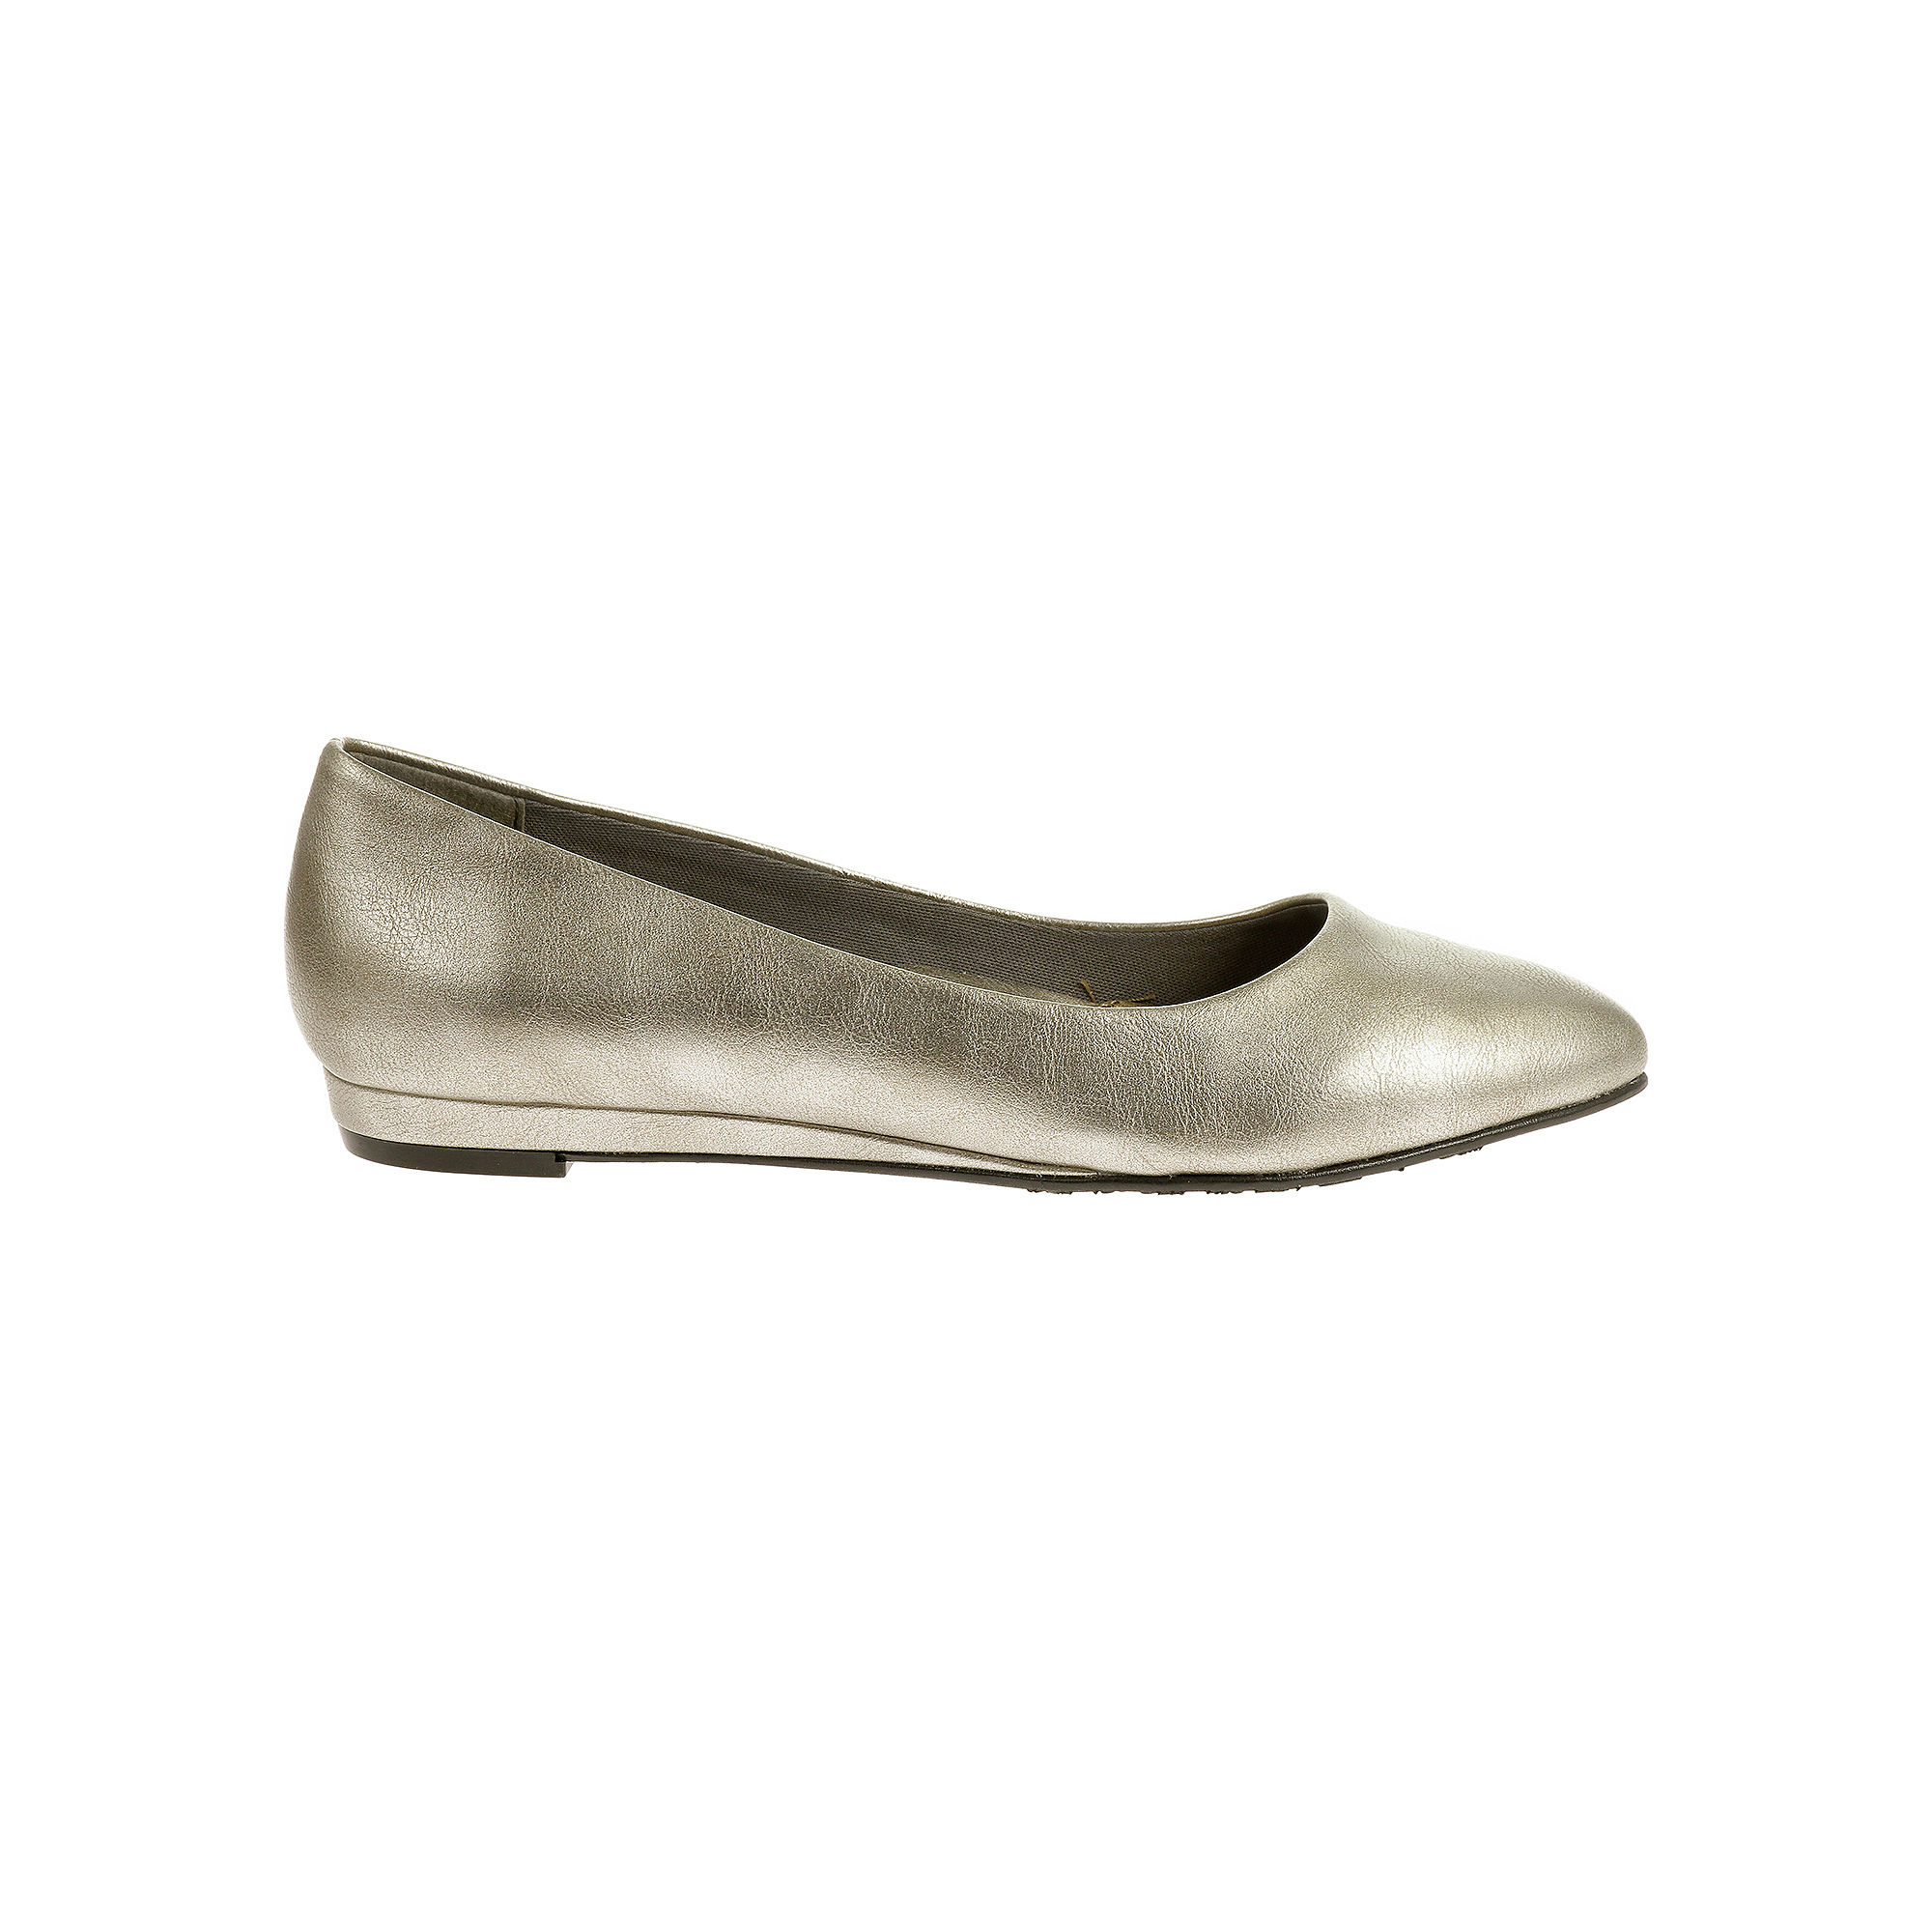 4a7f58be2078 ... UPC 044213005988 product image for Soft Style by Hush Puppies Darlene  Ballet Flats